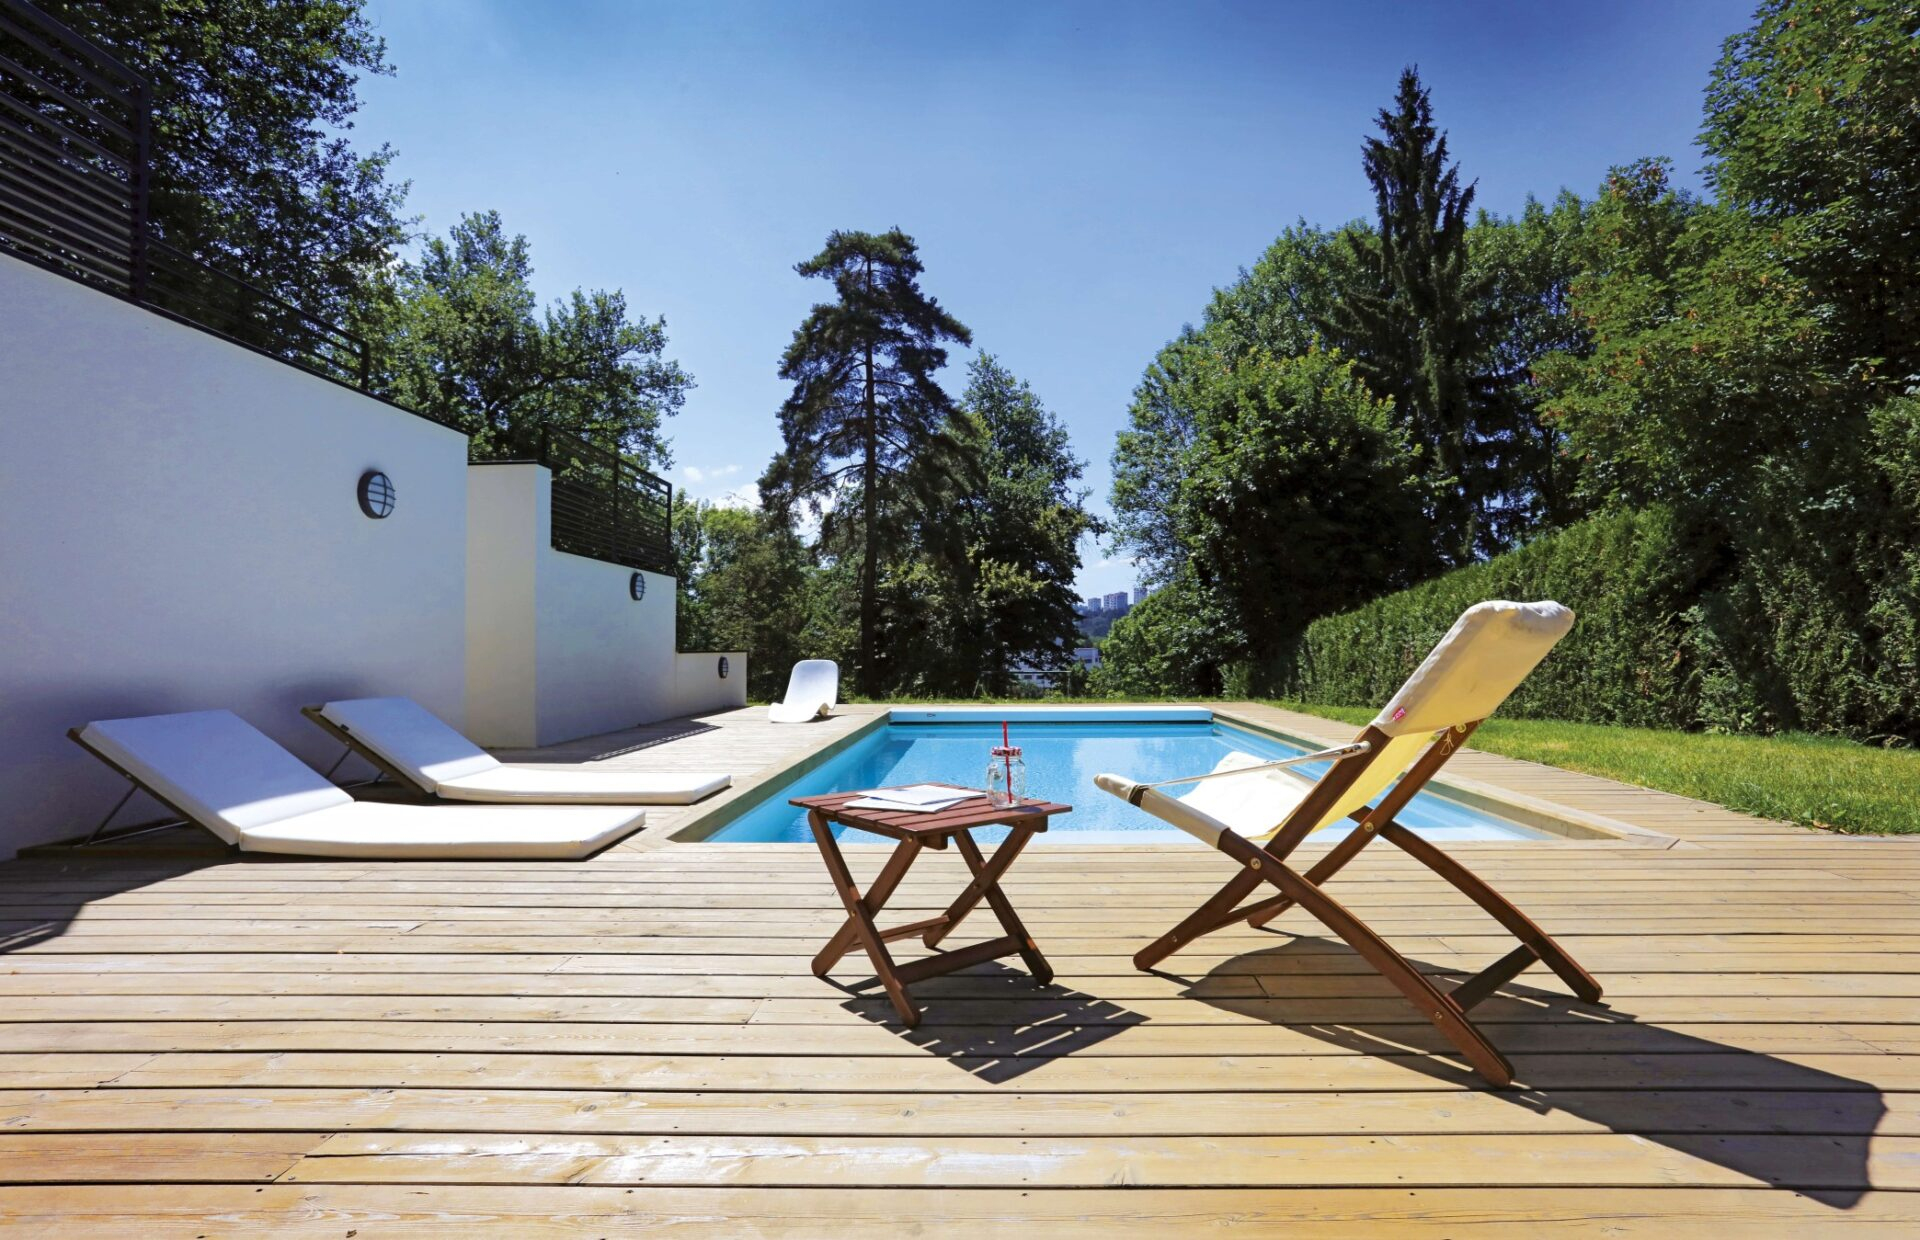 Conseils Piscine - Guide Piscine | Piscines Desjoyaux tout Dimension Piscine Non Imposable